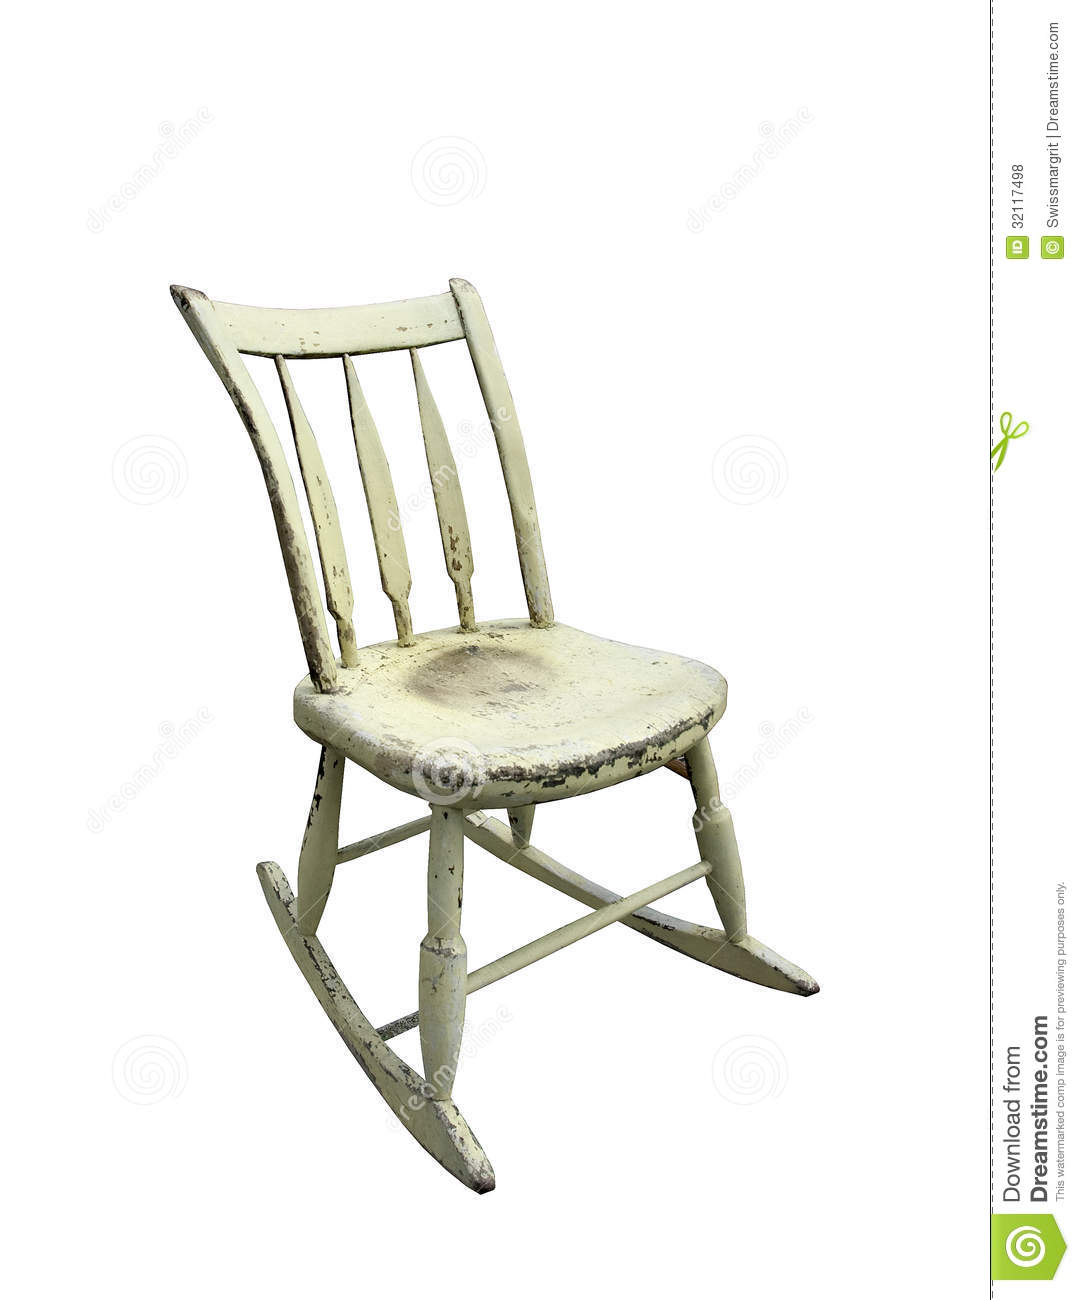 Vintage Small Rocking Chair Royalty Free Stock Photos